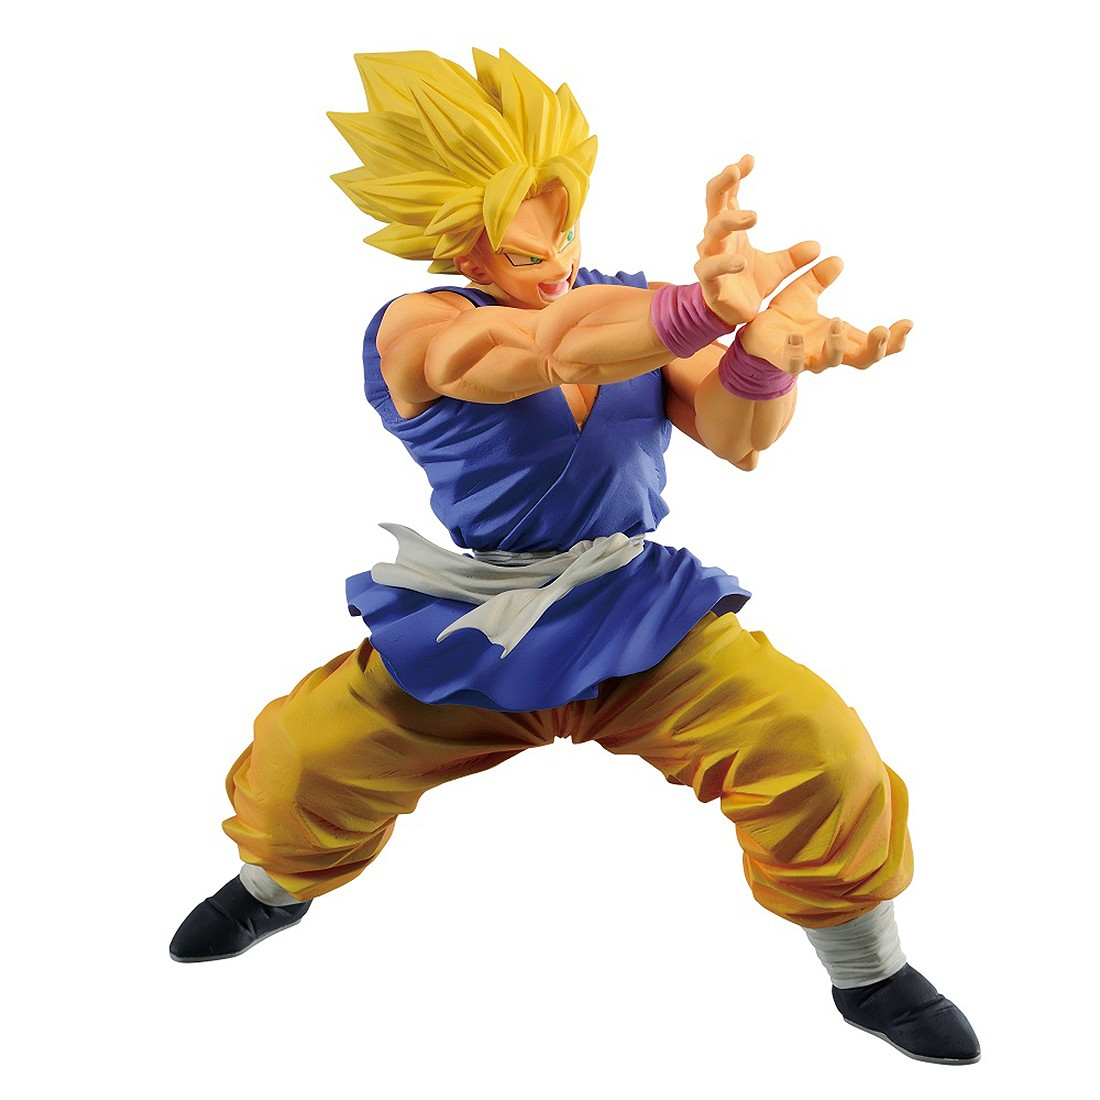 PREORDER - Banpresto Dragon Ball GT Ultimate Soldiers Super Saiyan Son Goku Figure (yellow)